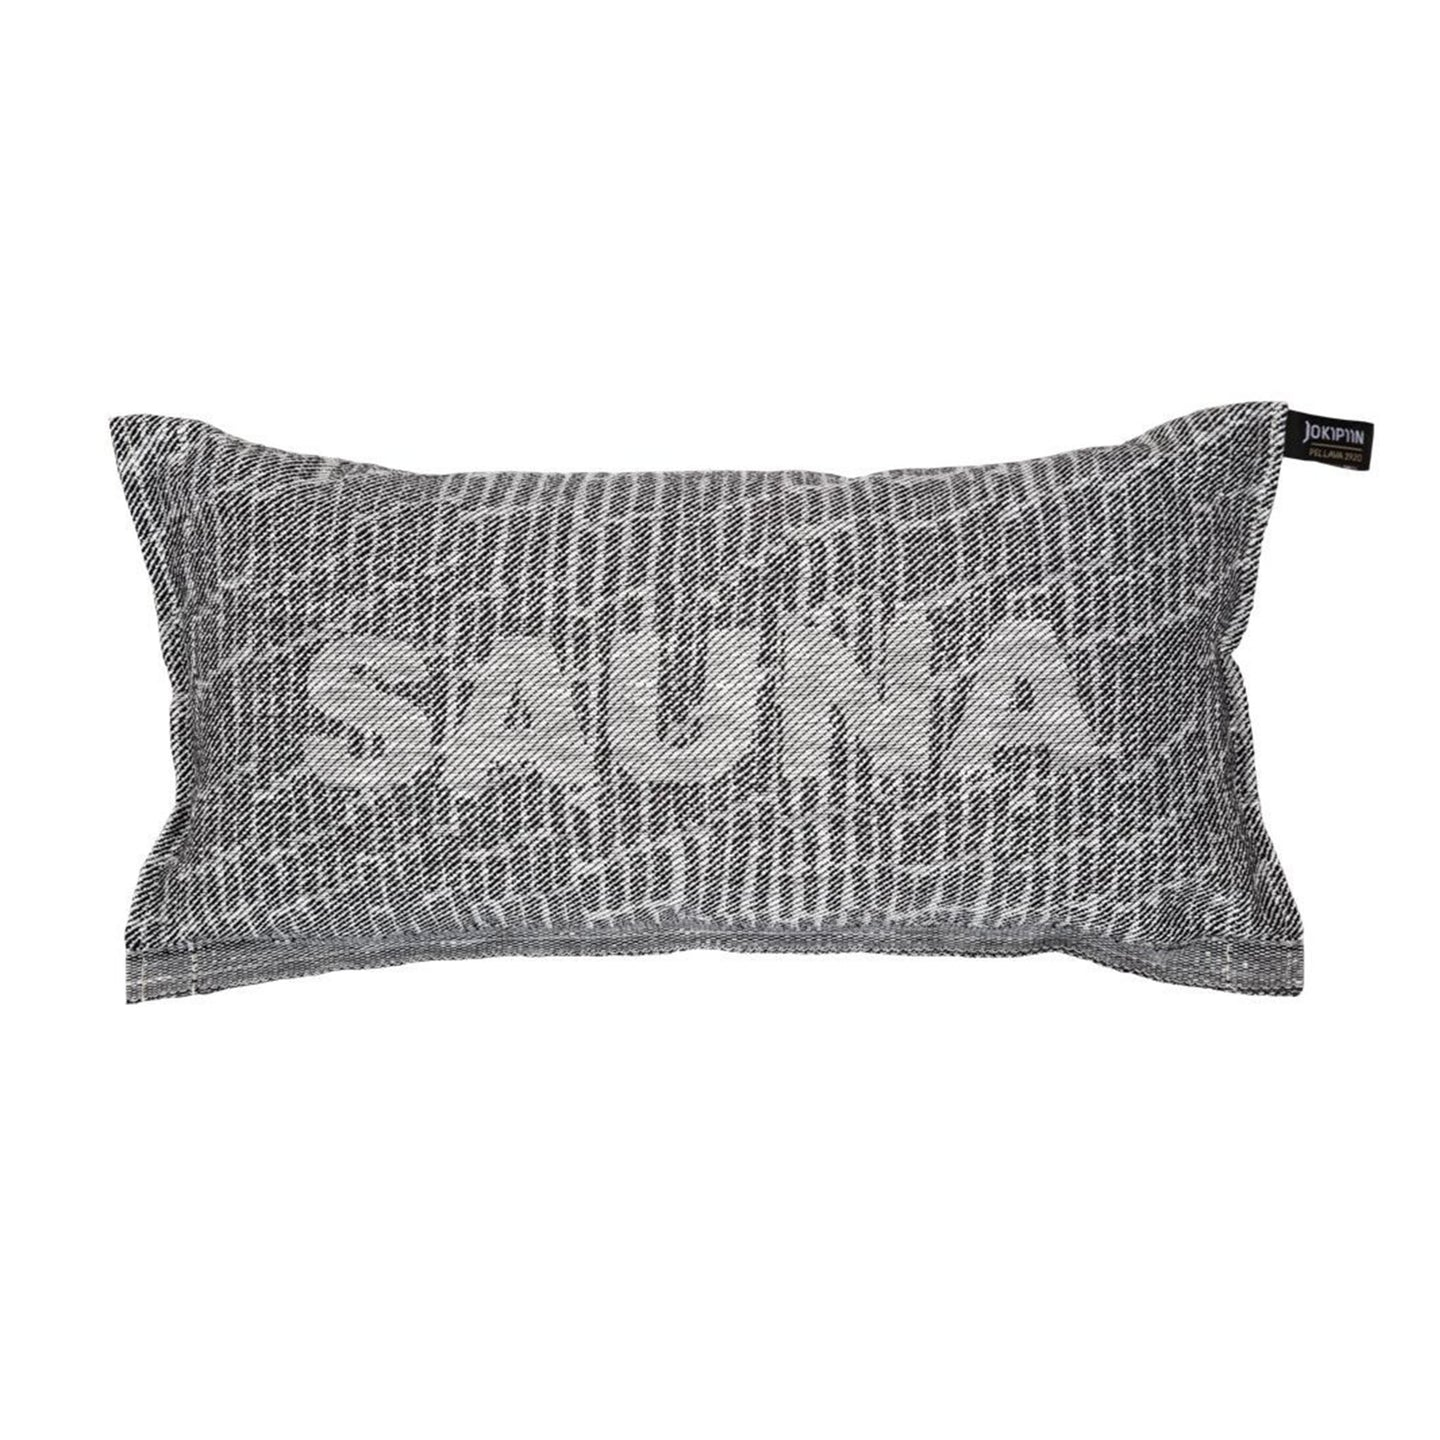 Sauna Pillow Saunatikut Collection by Jokipiin Pellava White/Black Default Title Sauna Pillow Finnmark Sauna